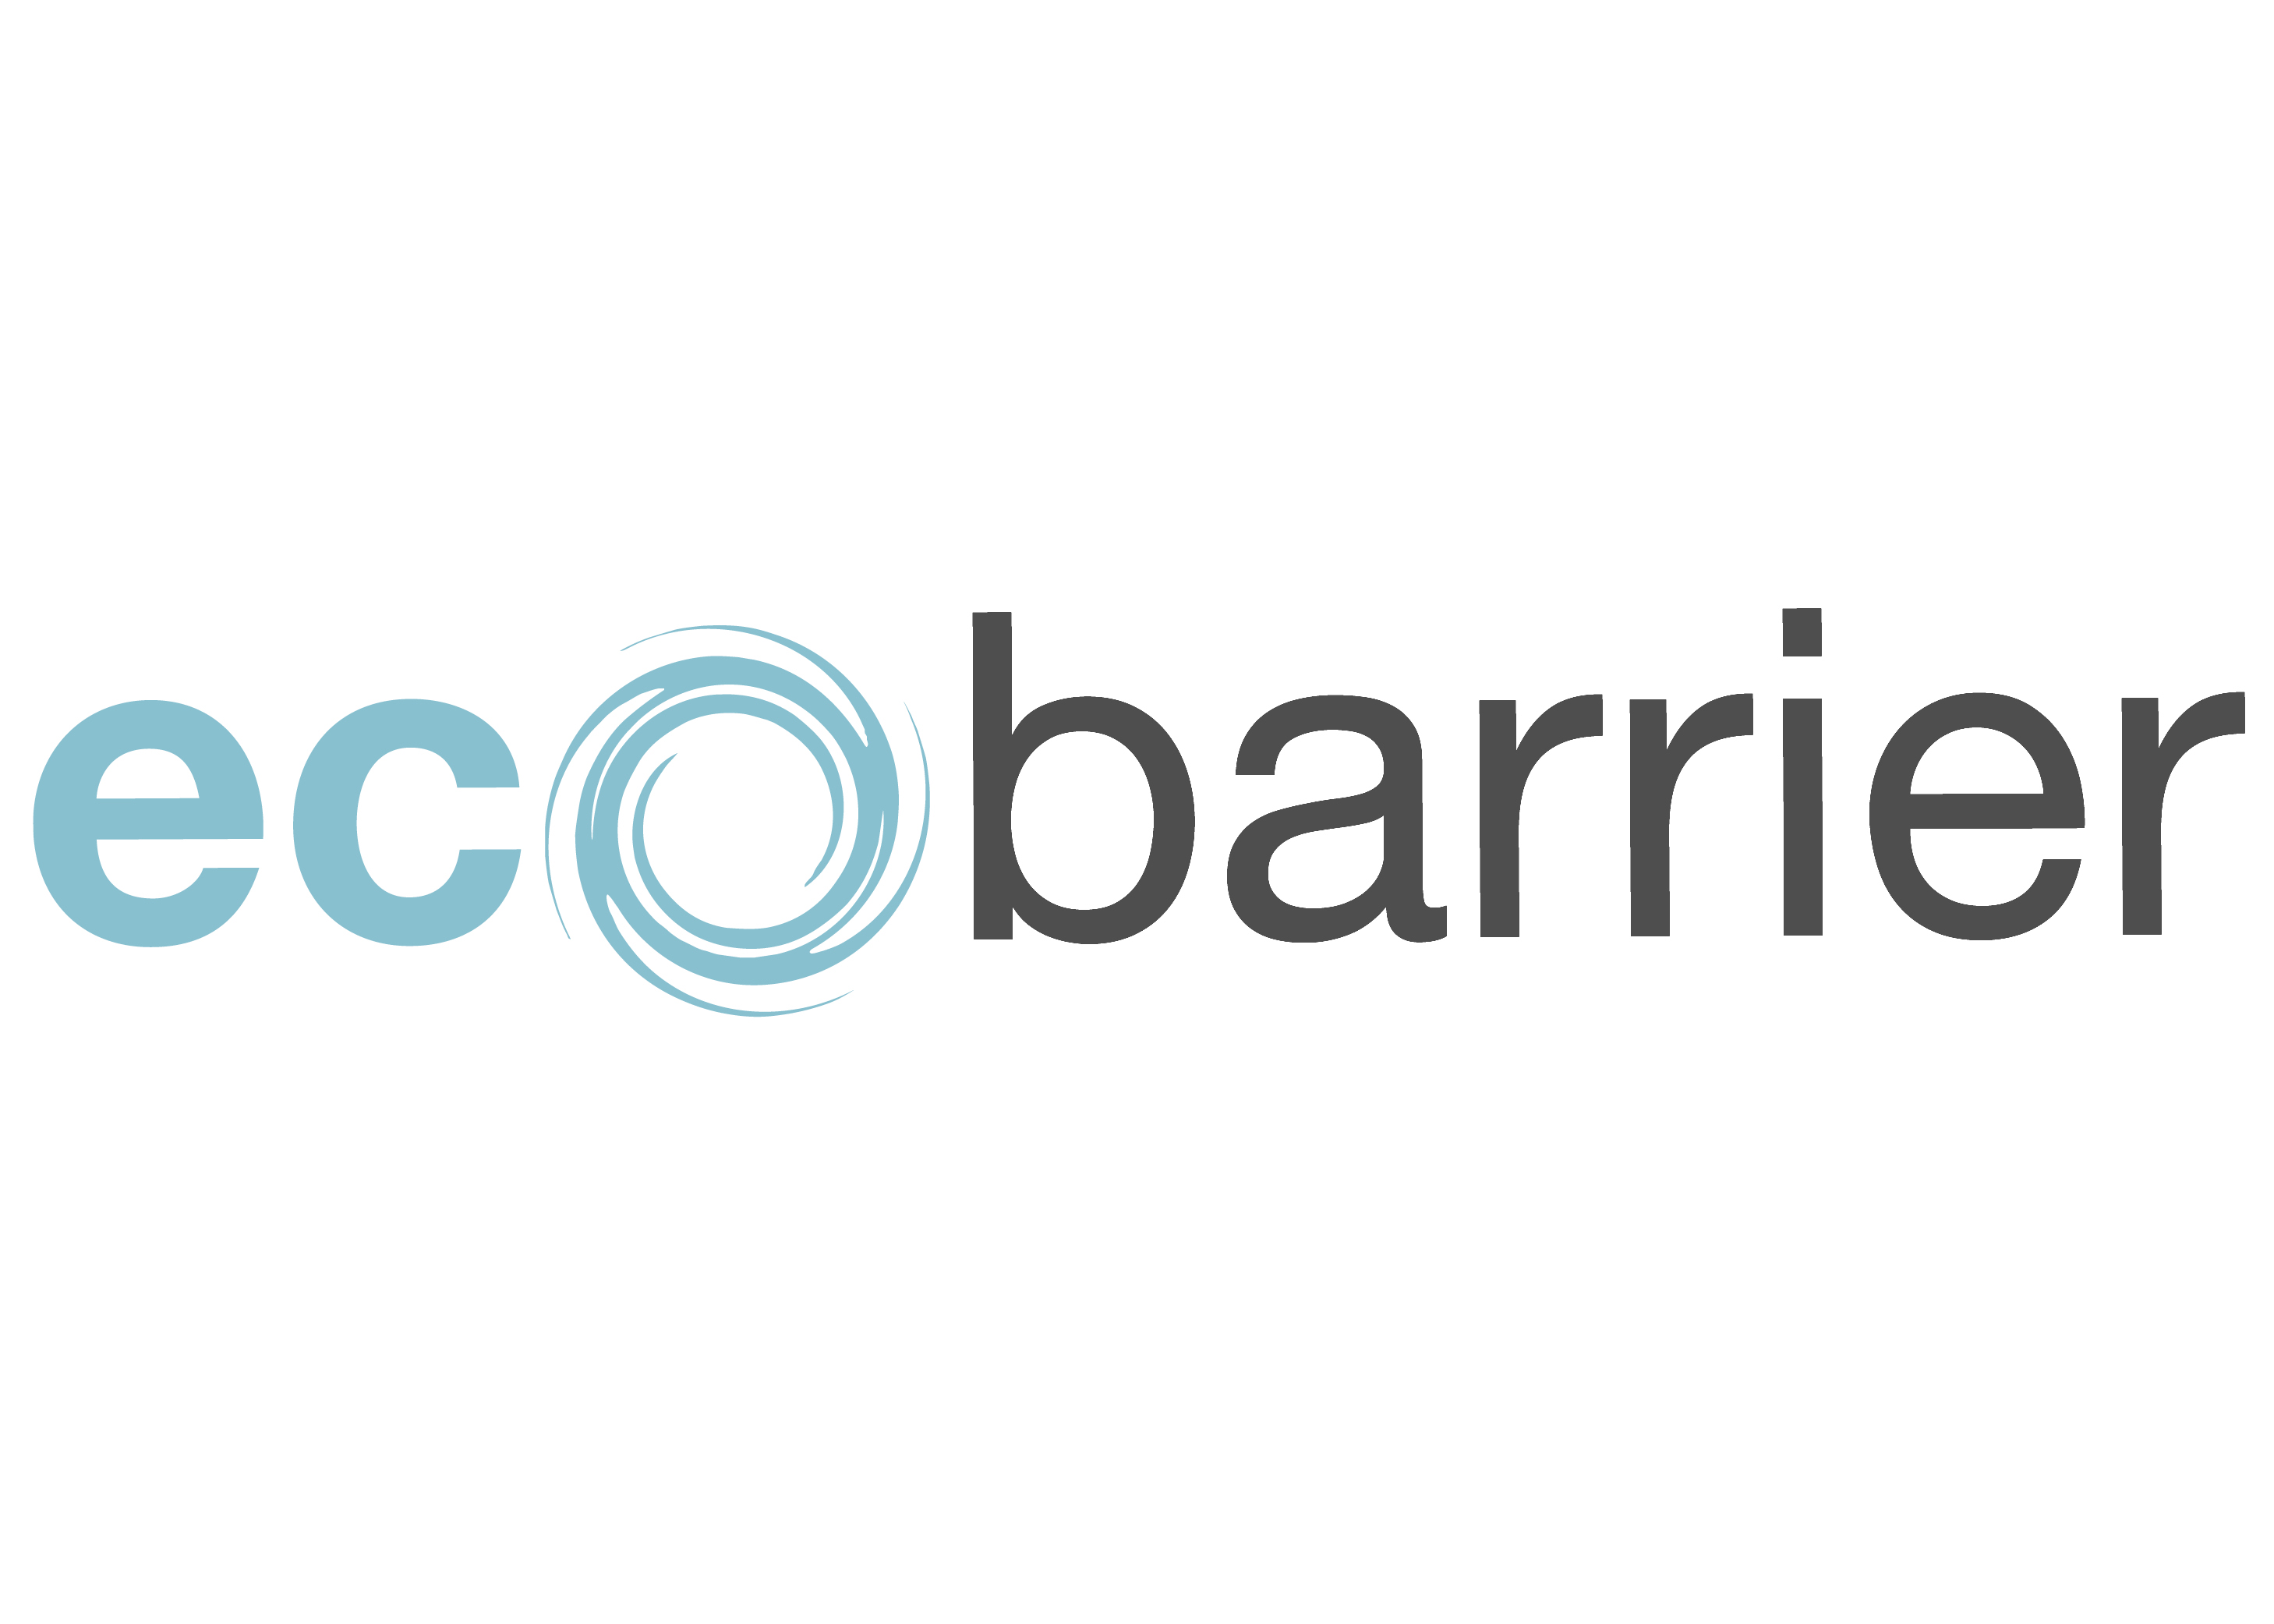 An Ecobarrier® Brand